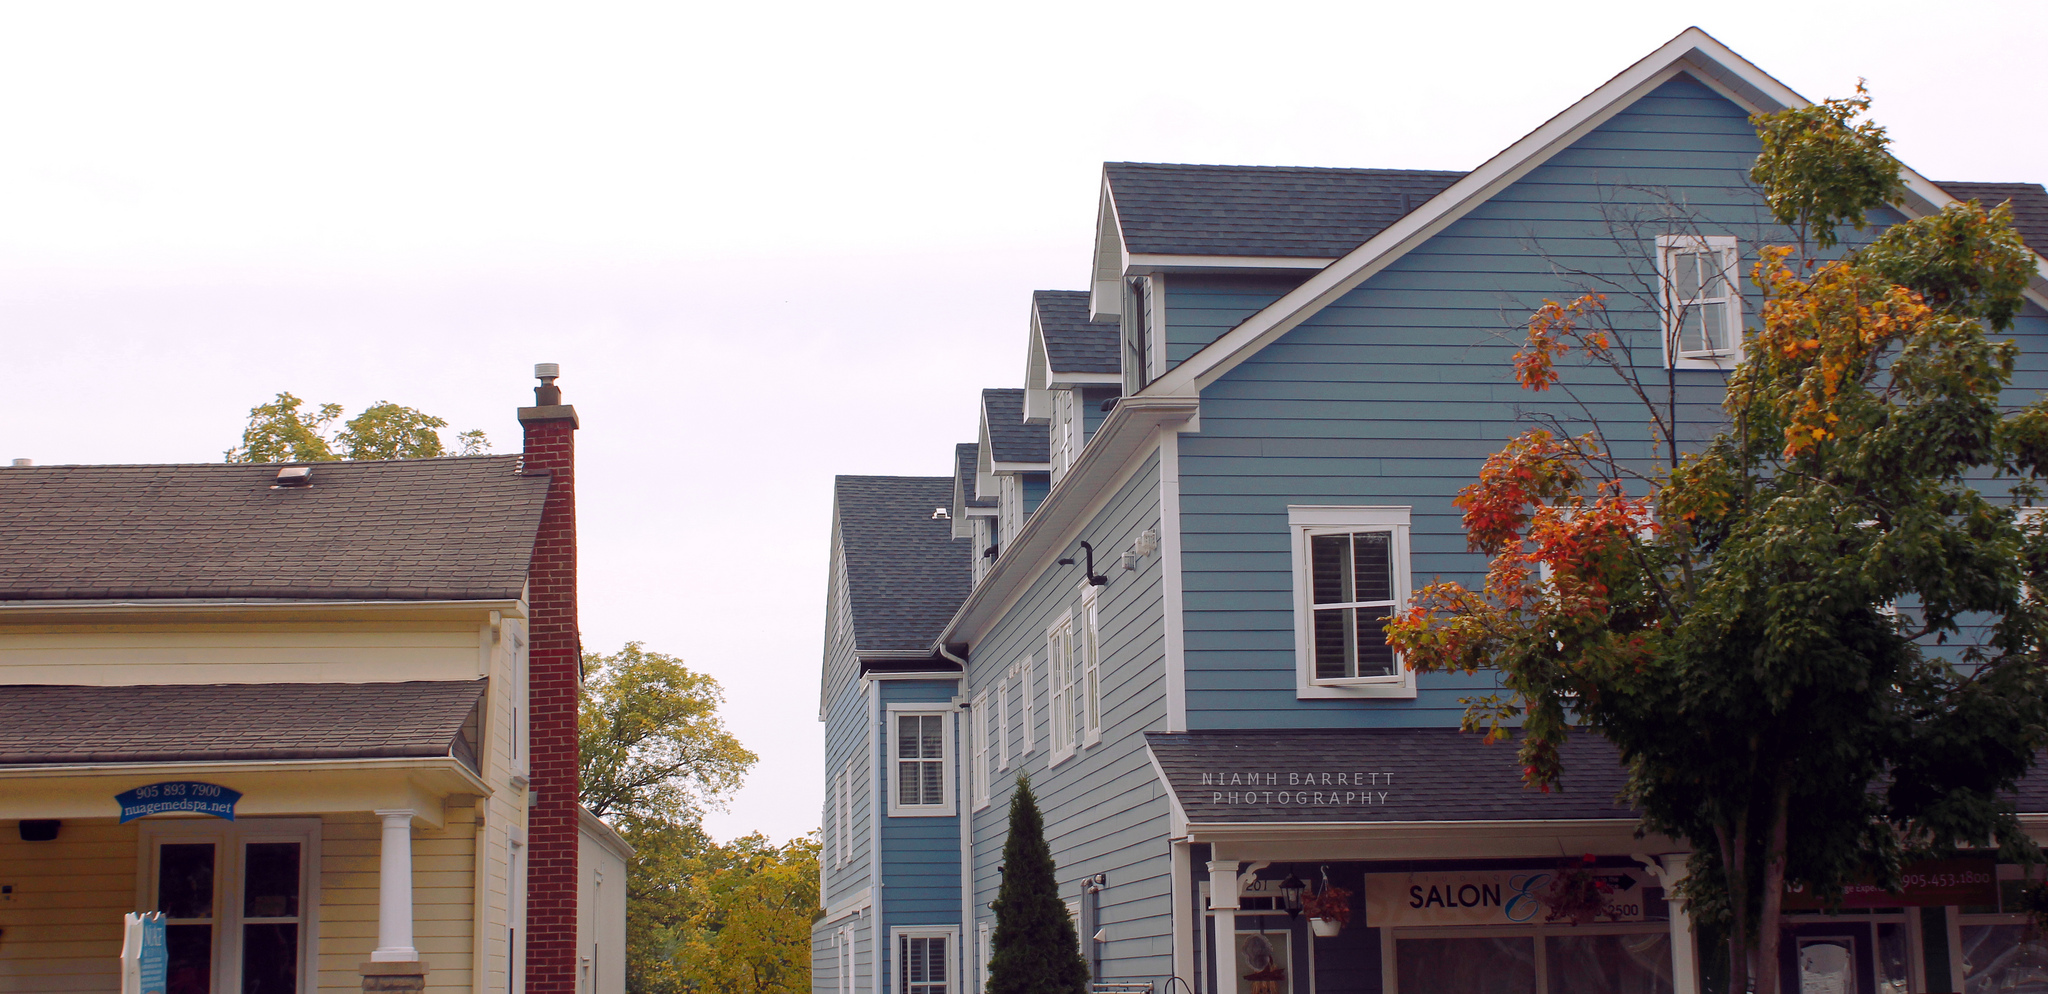 Kleinburg, Vaughan, in the GTA | © Niamh / Flickr